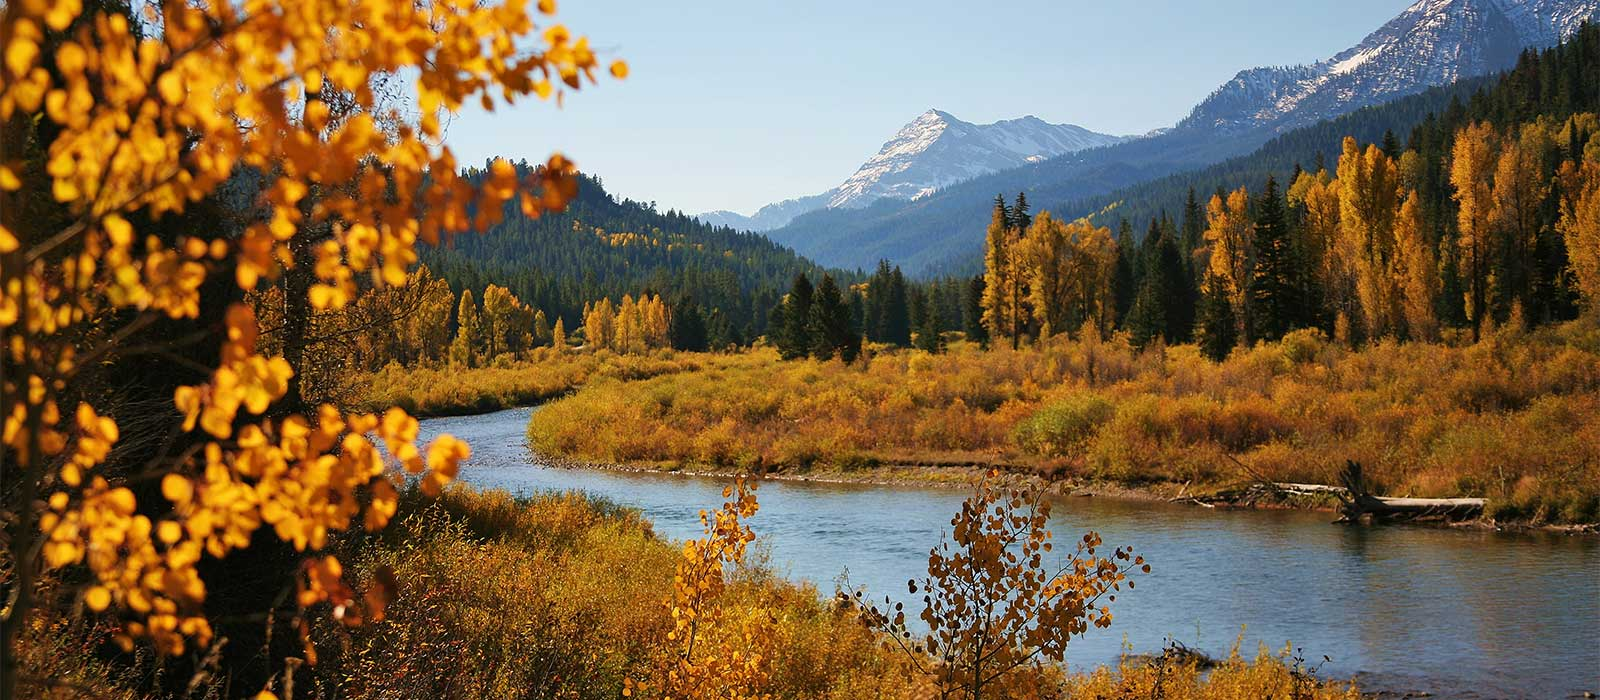 deadman ranch | fly fishing lodges in wyoming, Fly Fishing Bait